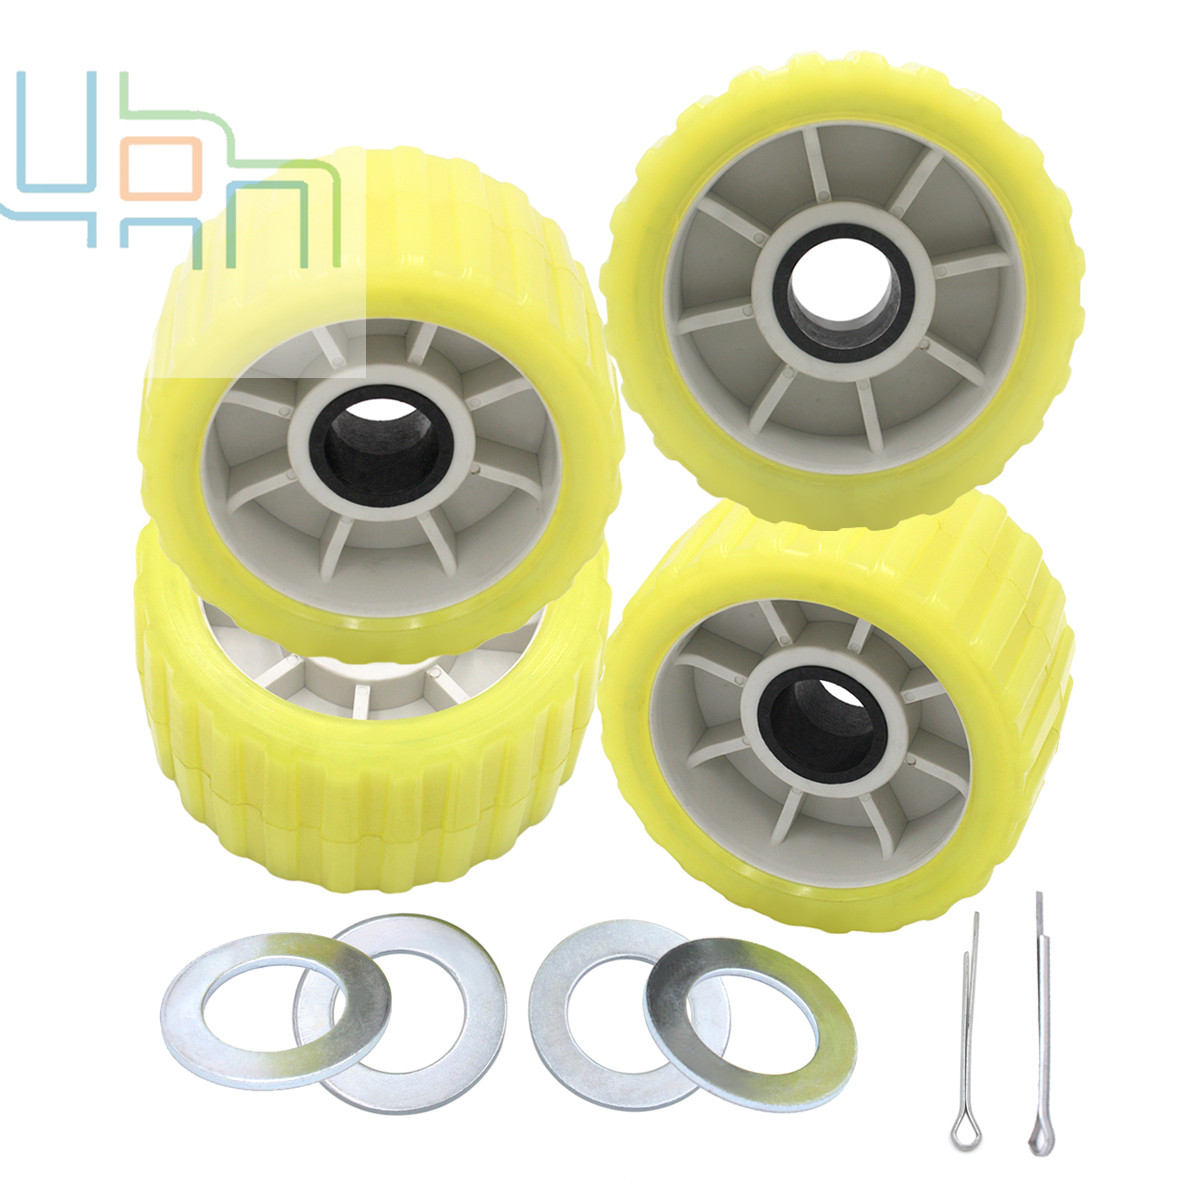 Boat Trailer Amber/Yellow Poly Ribbed Wobble Roller Kit 5/Ribbed PVC Long-Lasting Vinyl  Amber Rol